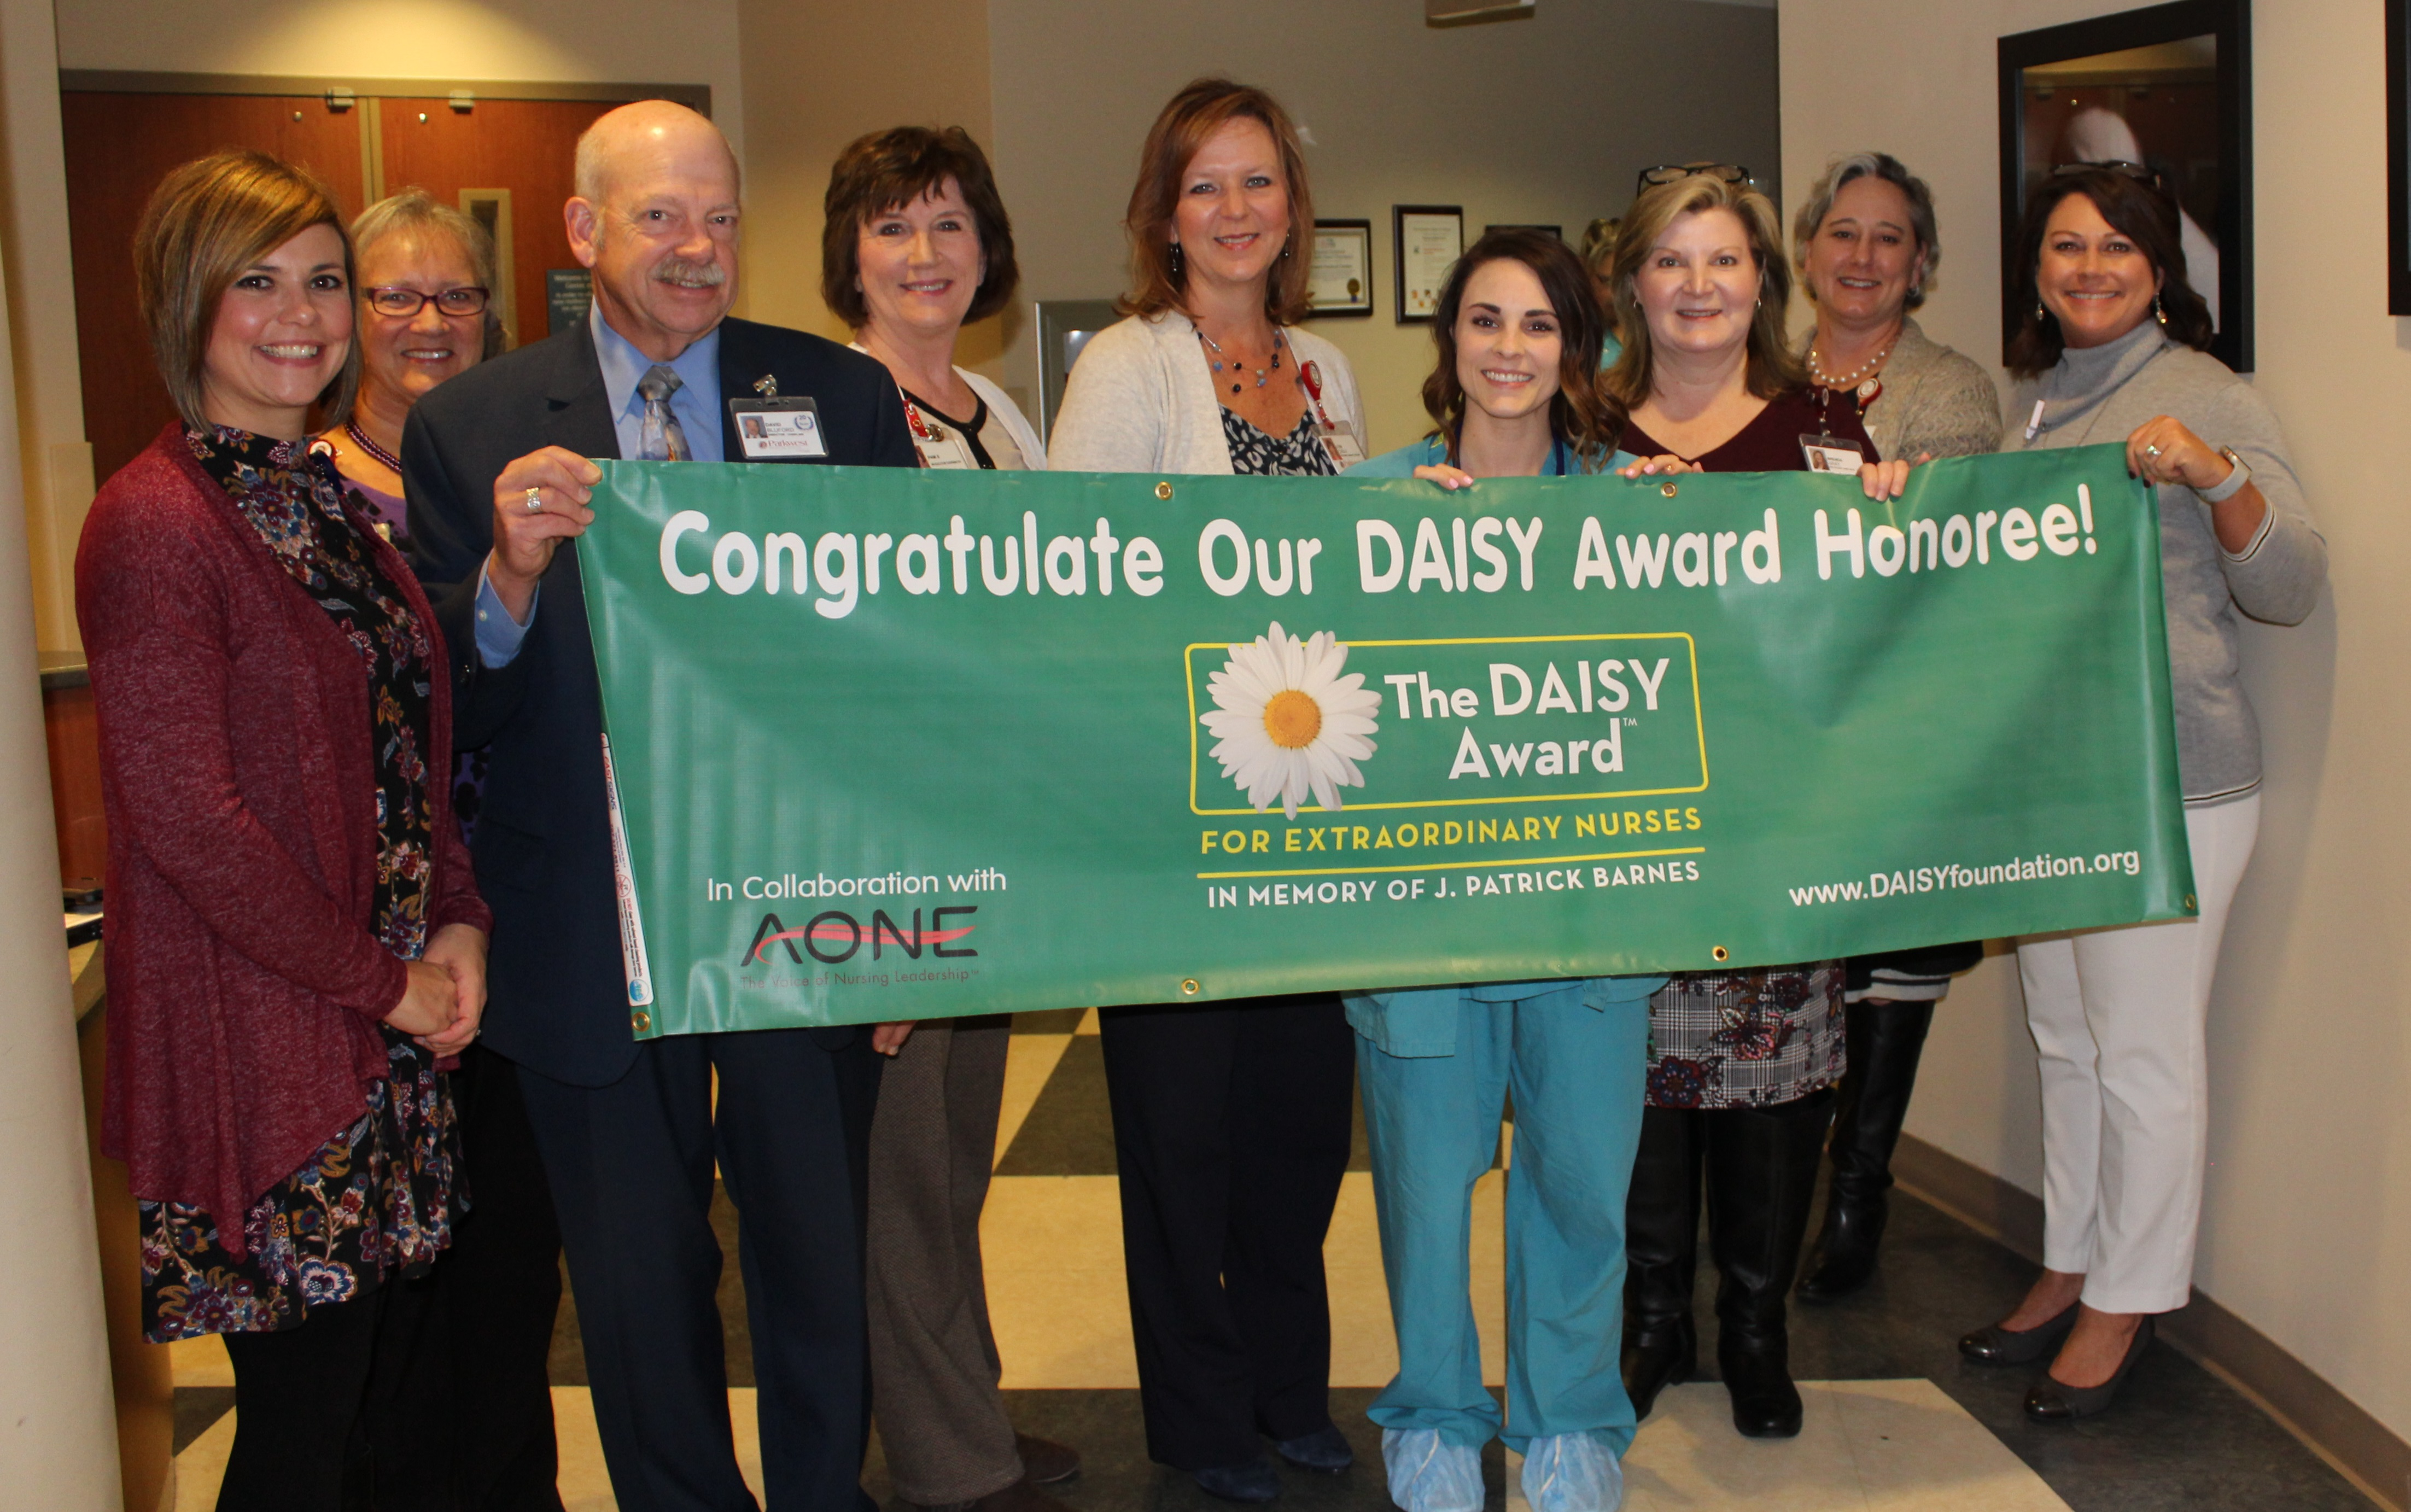 Danielle Bishop, RN, Honored with DAISY Award